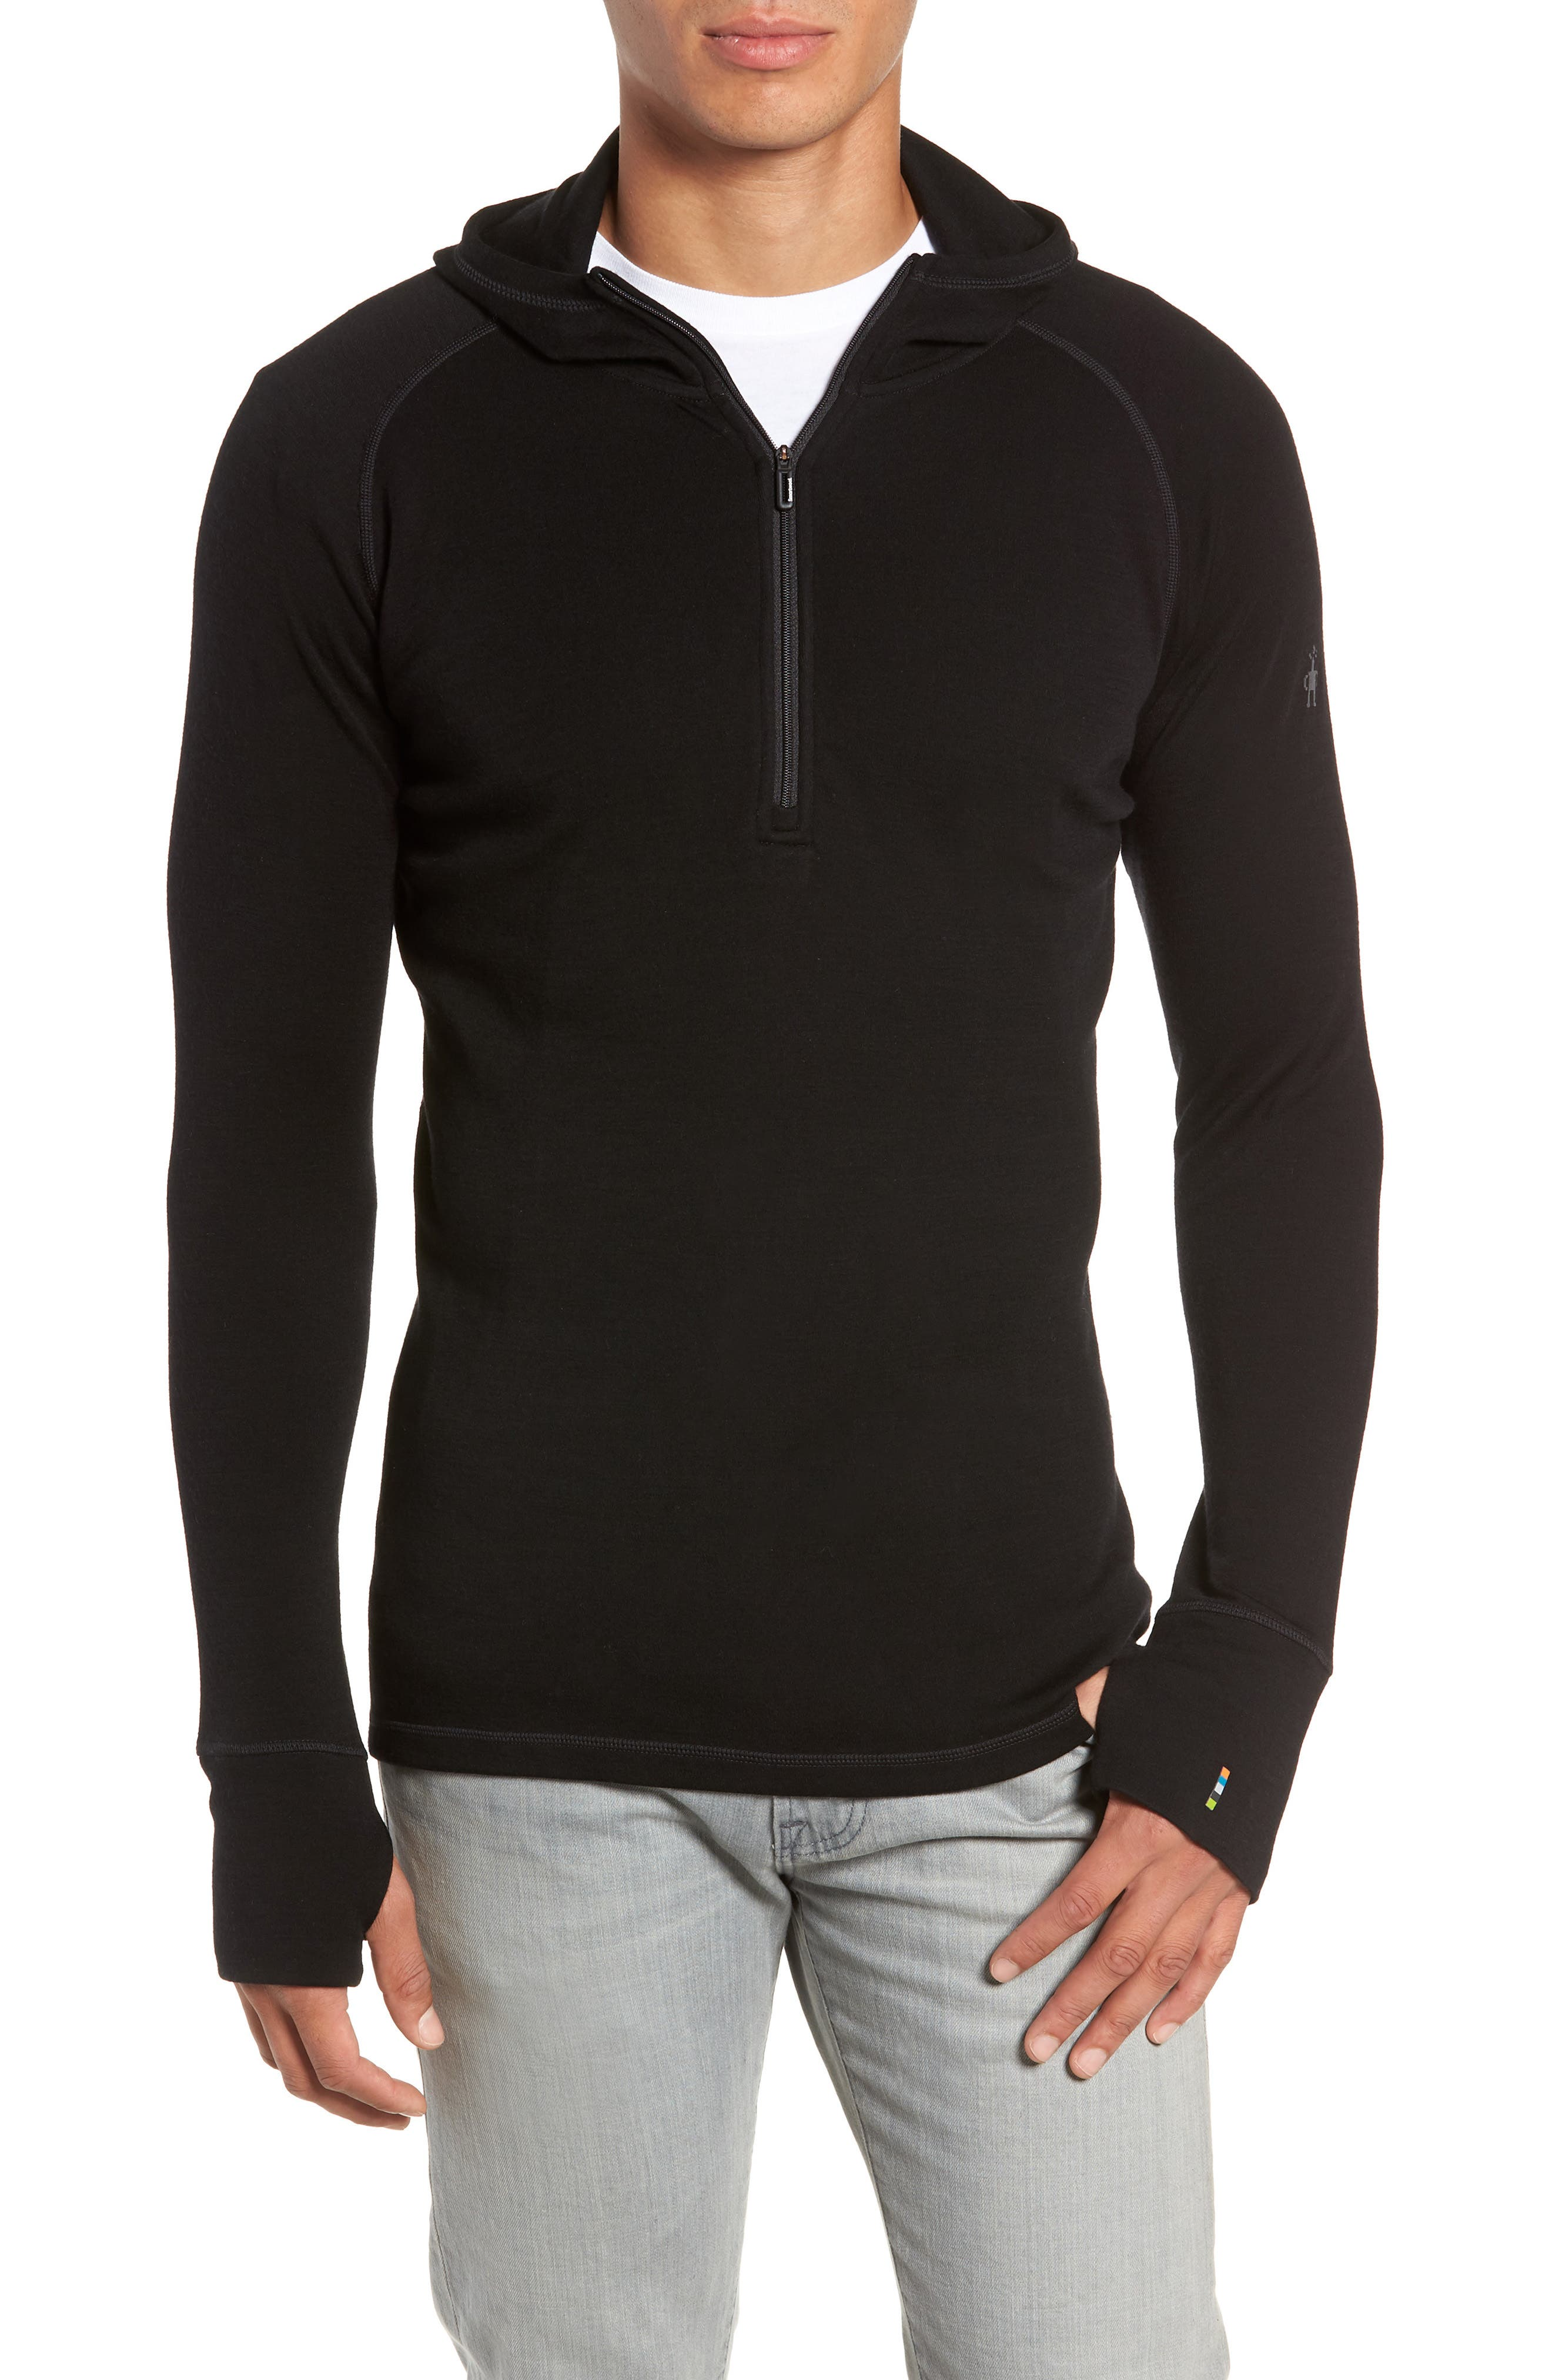 Smartwool Merino 250 Base Layer Hooded Pullover